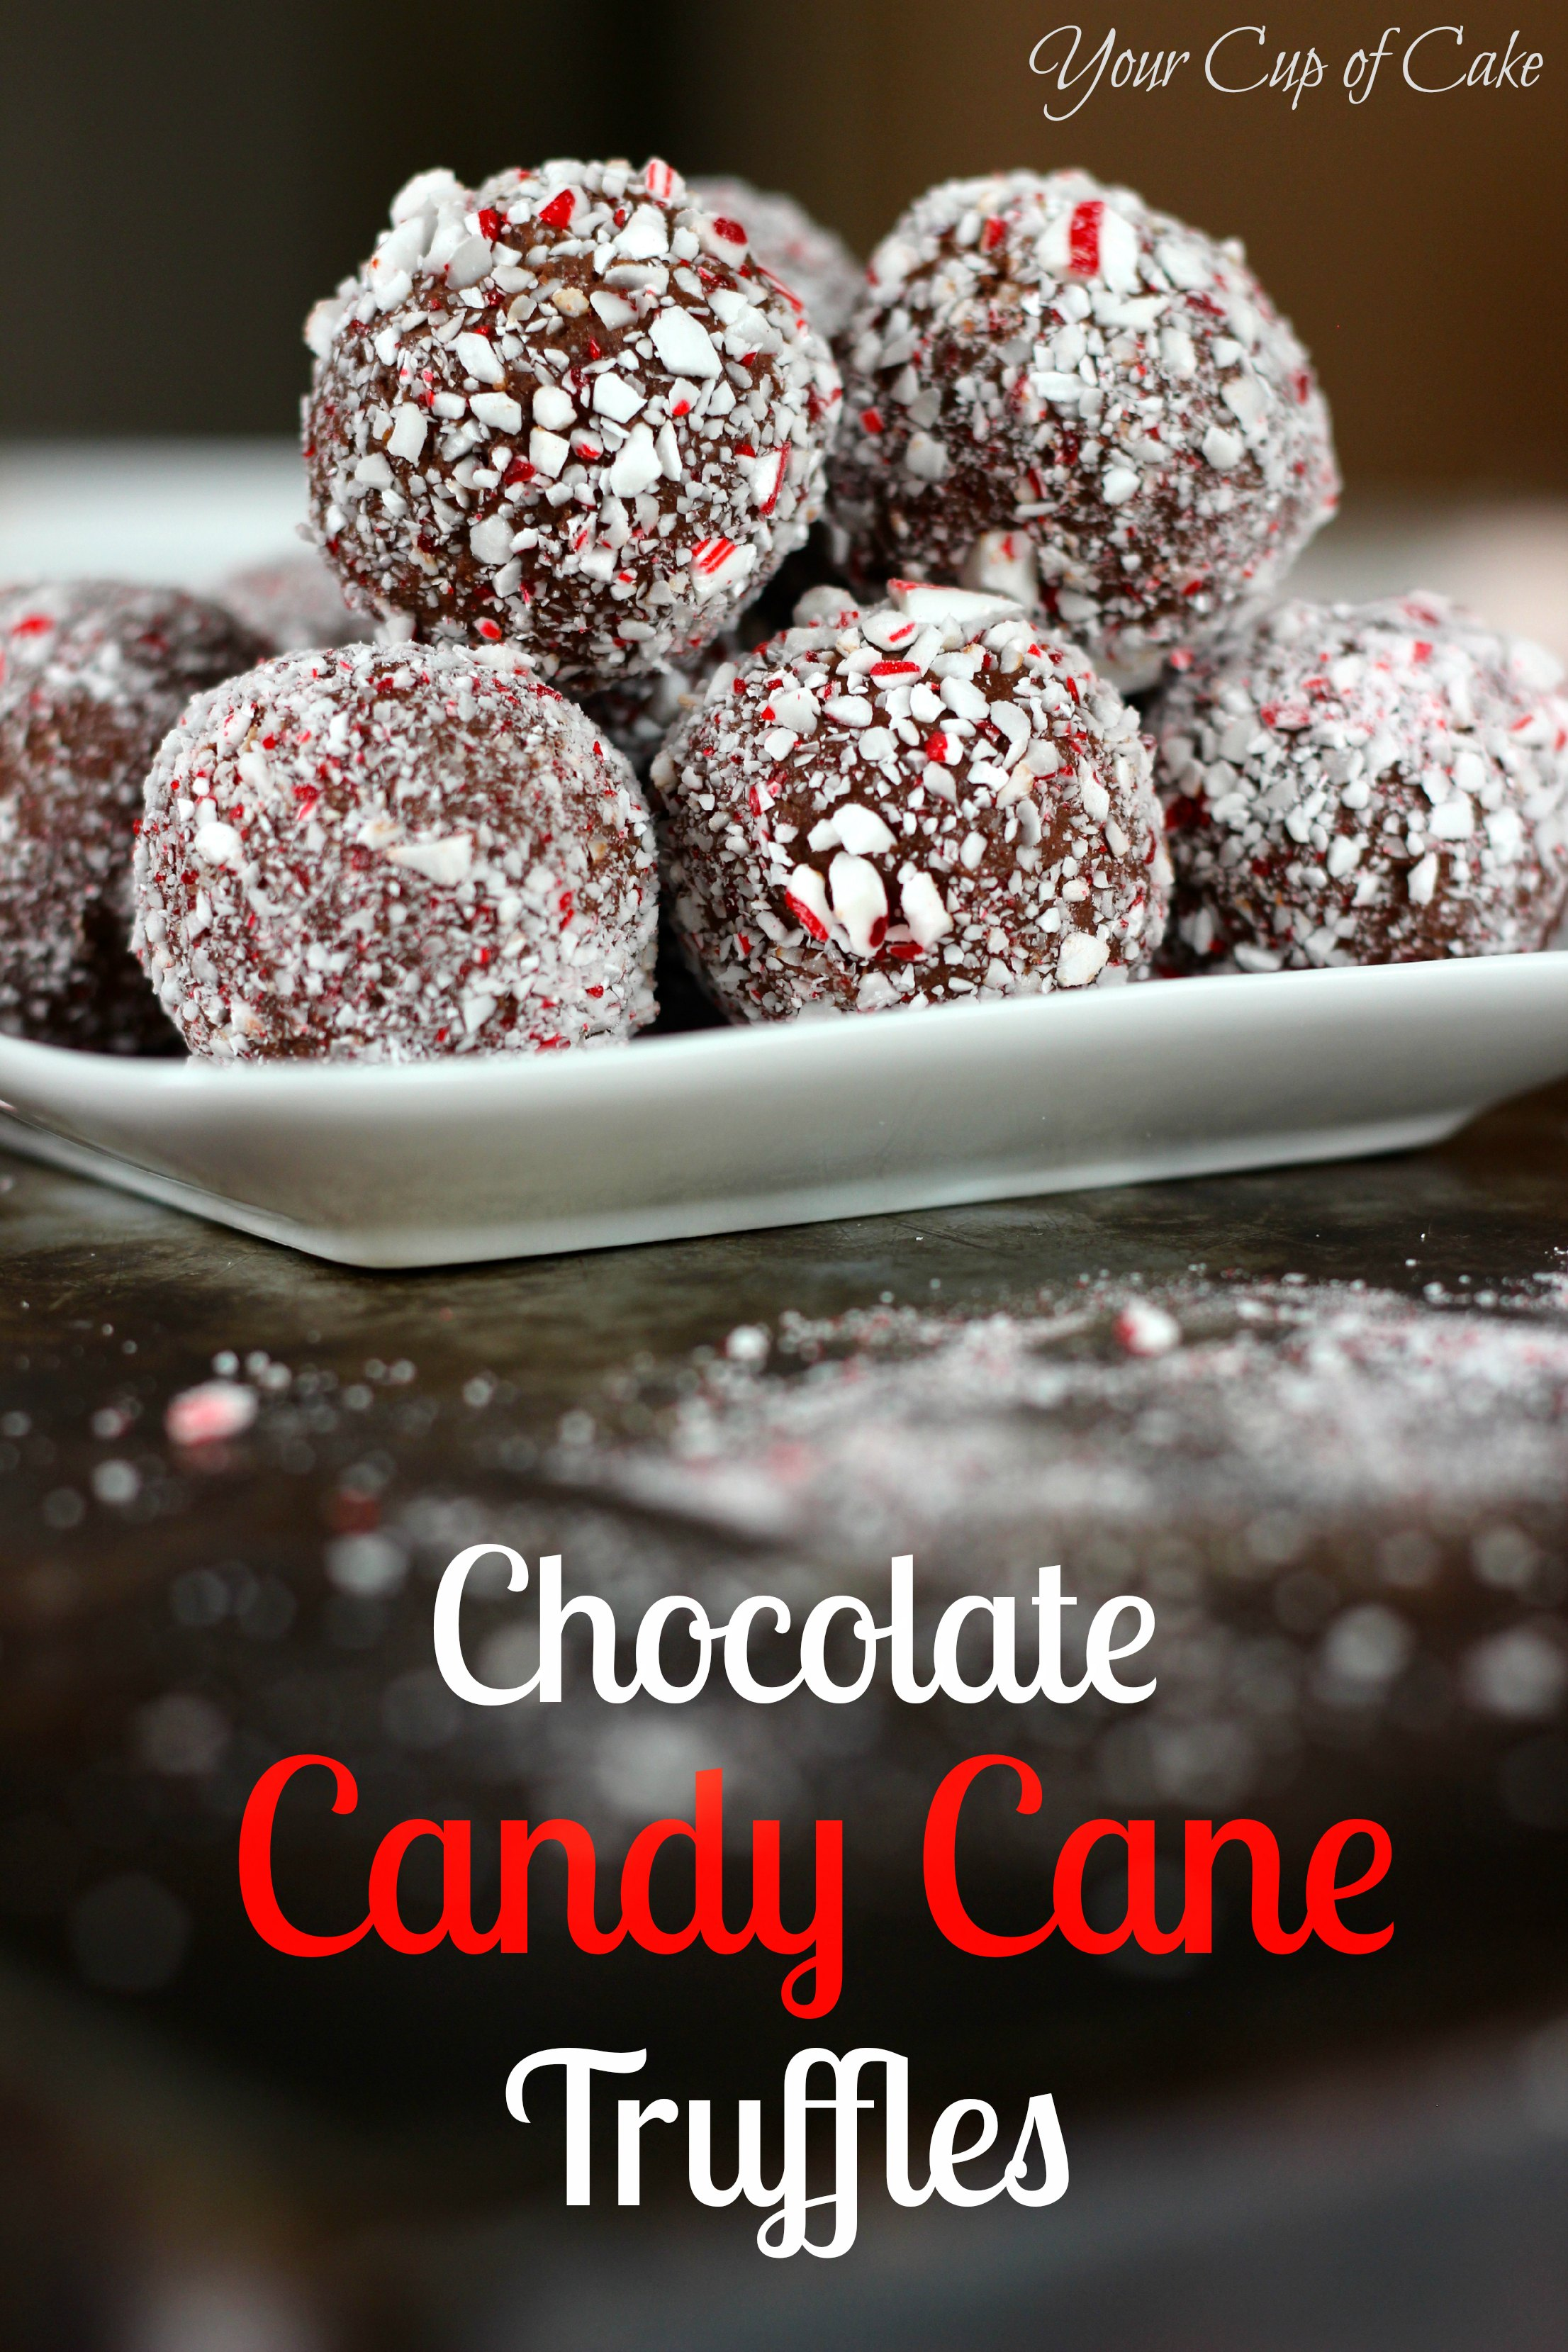 Chocolate candy canes